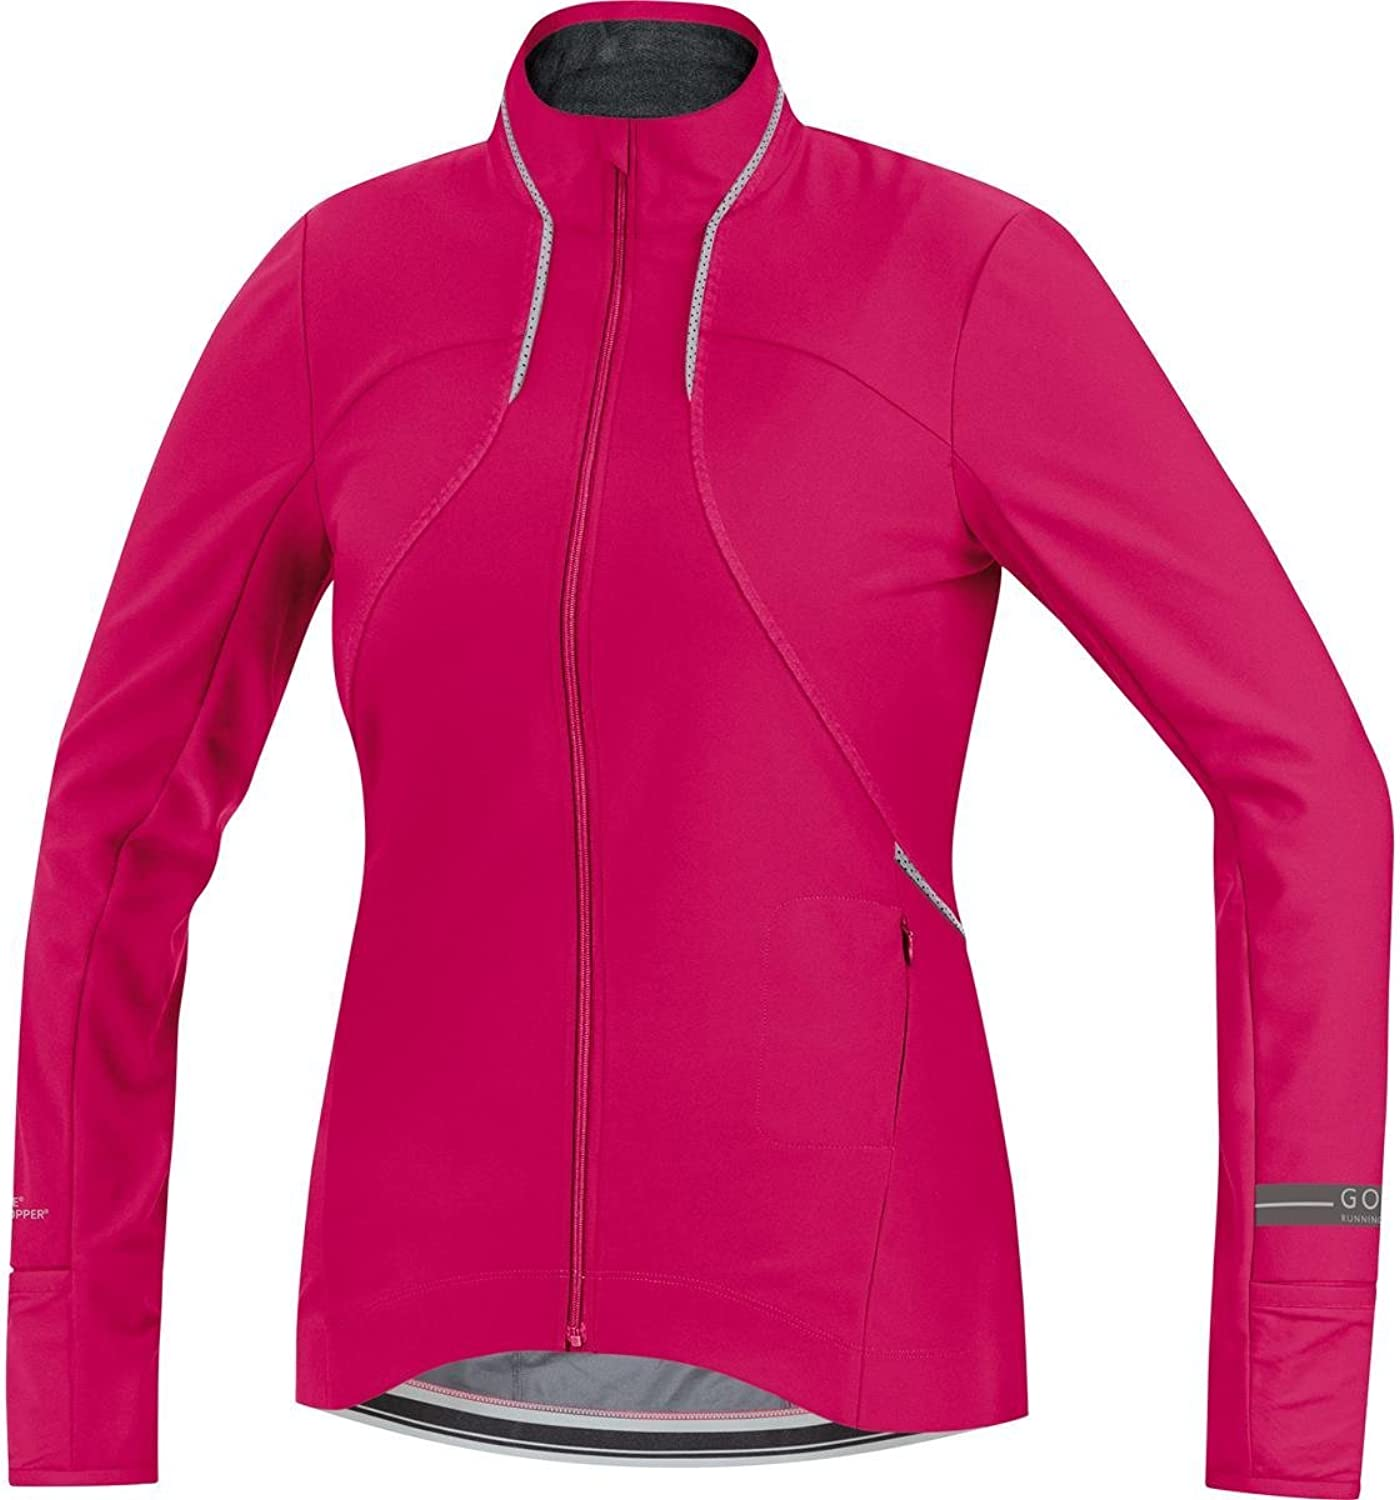 Gore Air Windstopper Softshell Women's Running Jacket  SS17  Small